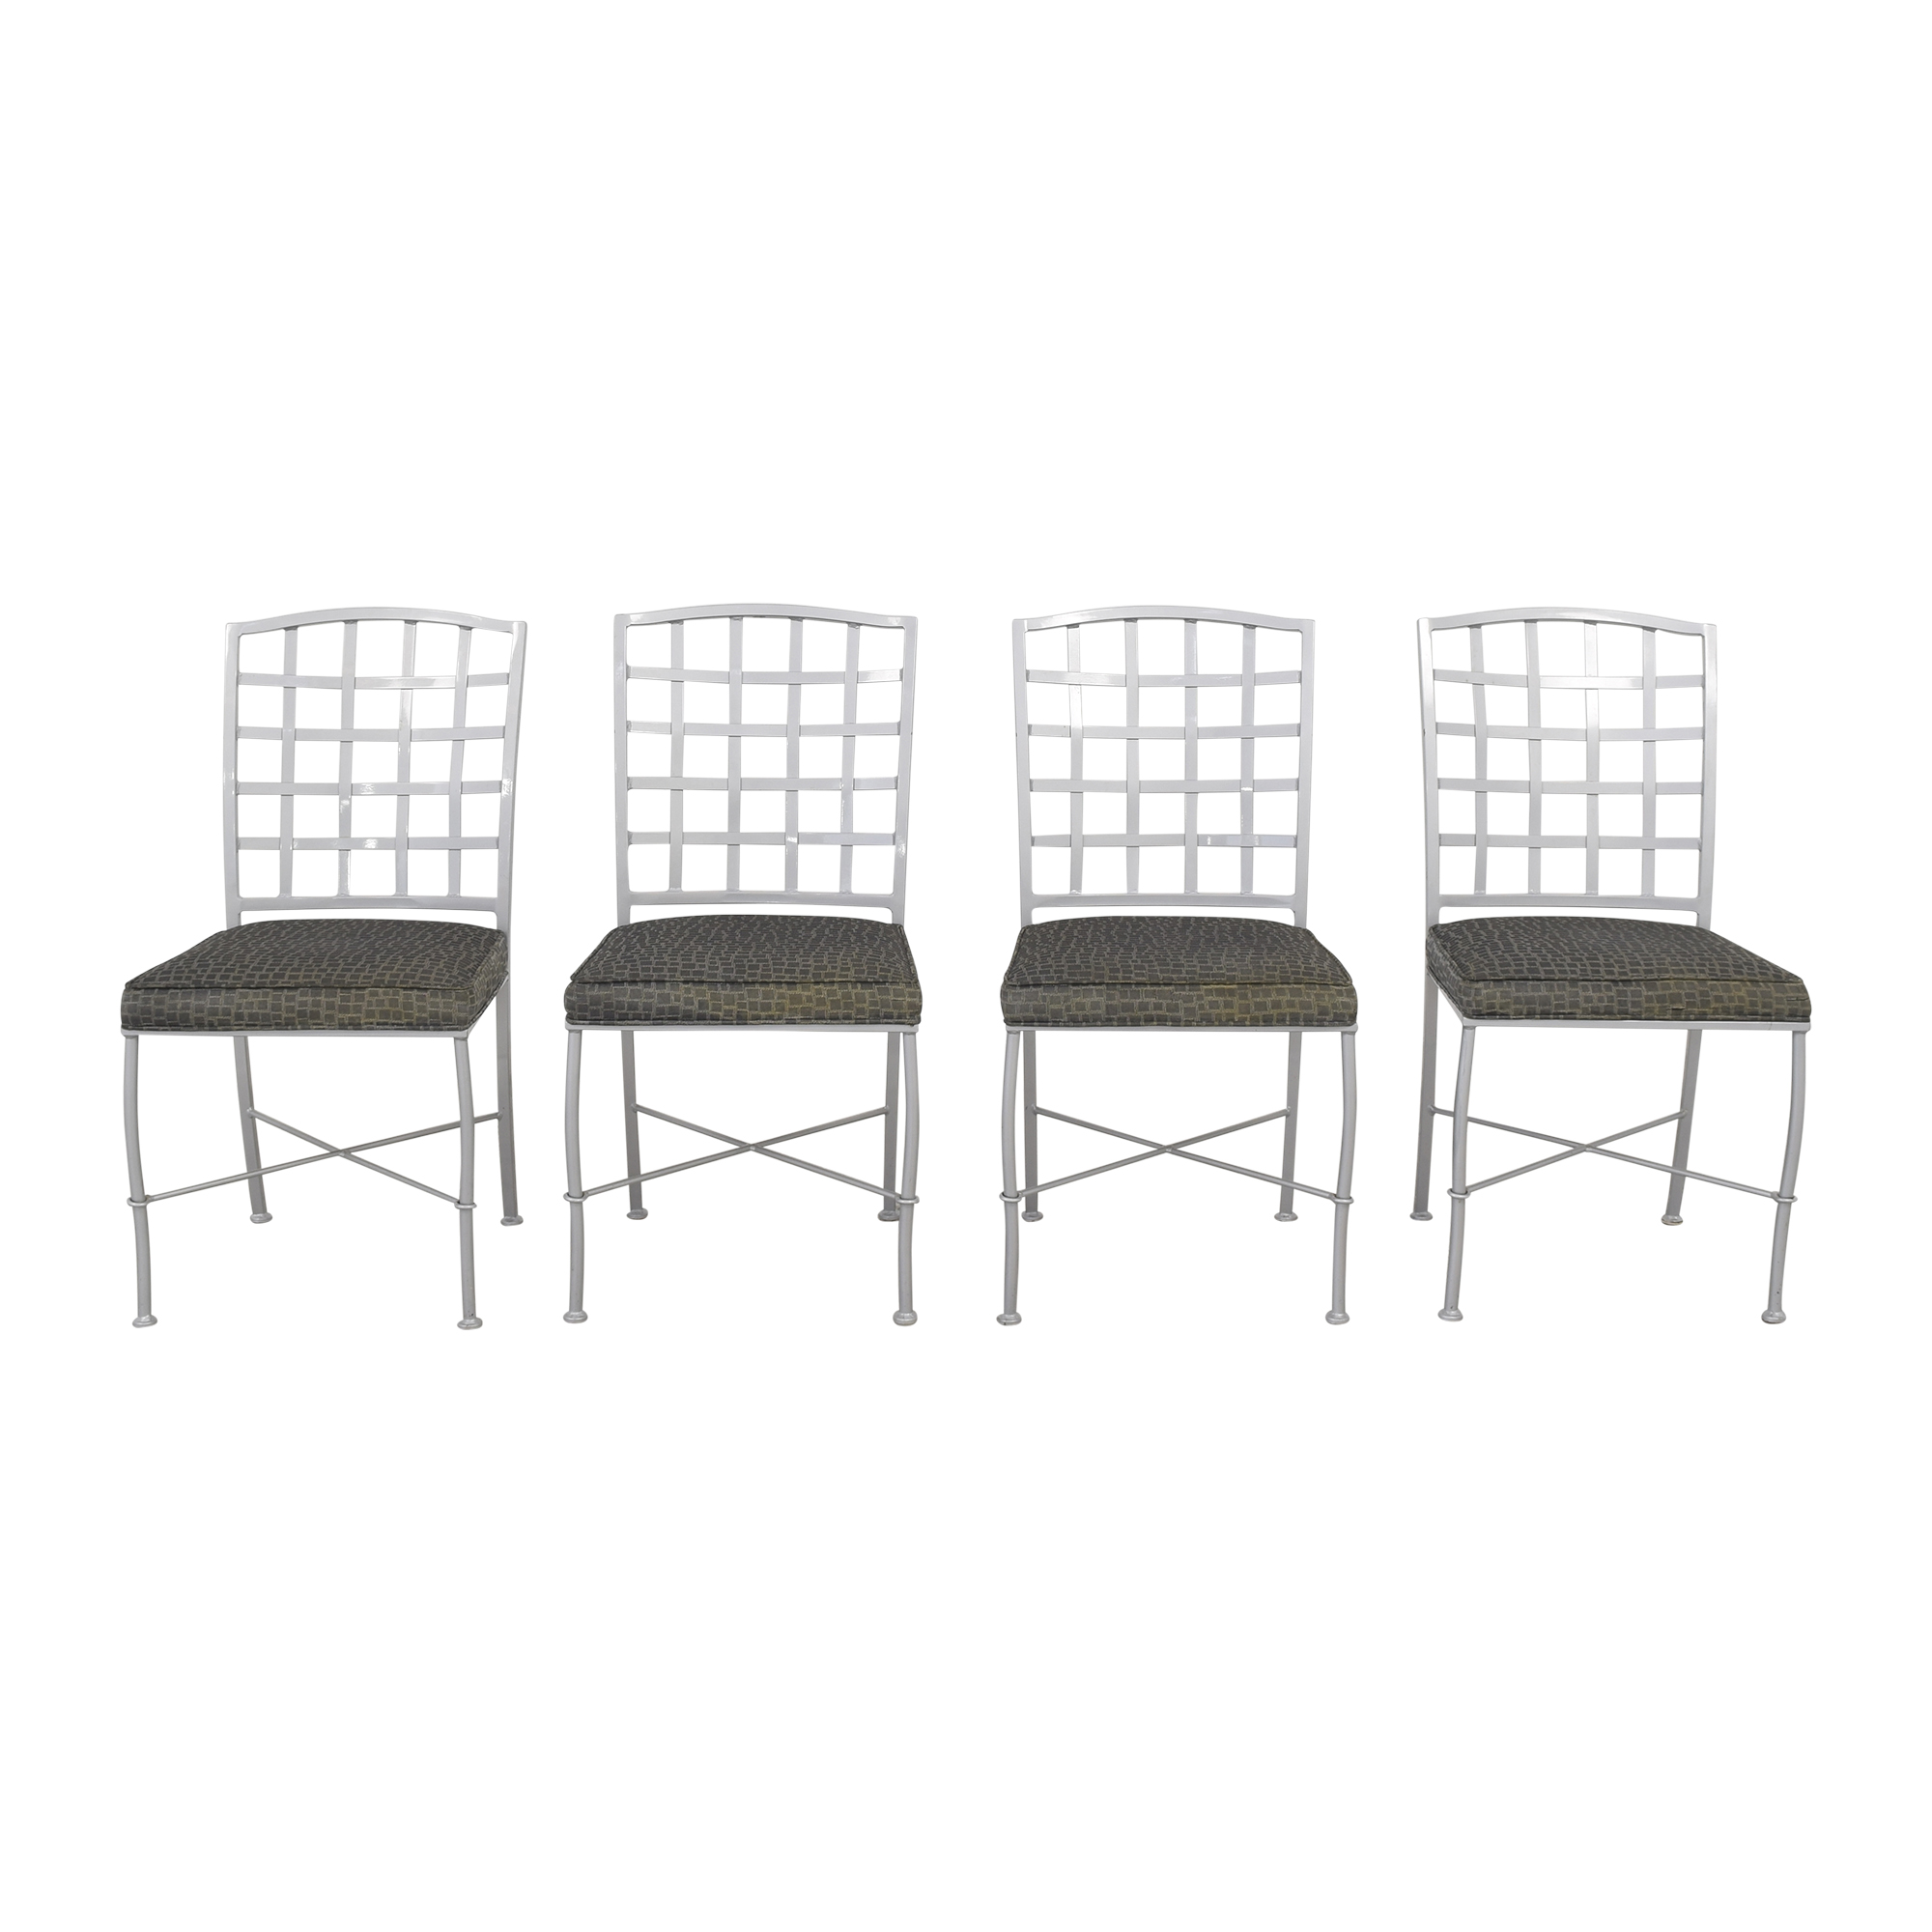 Johnston Casuals Johnston Casuals Lattice Back Dining Chairs on sale